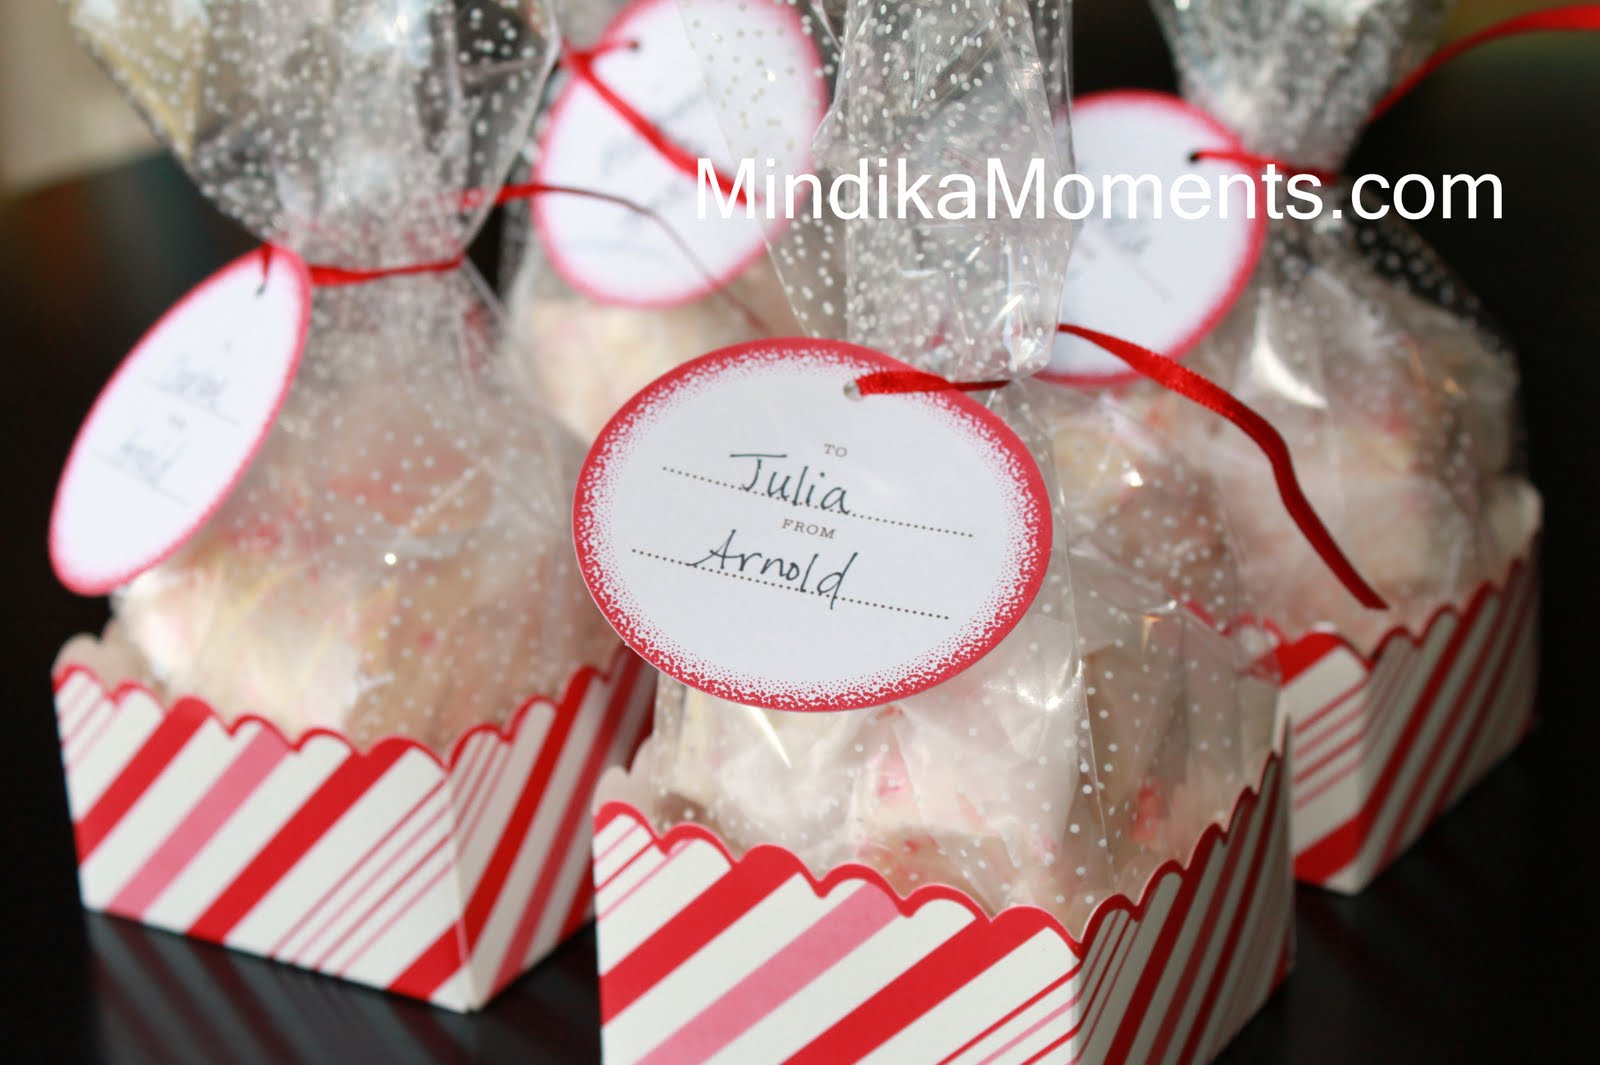 ... candy cane inspired packages purchased at my local craft store